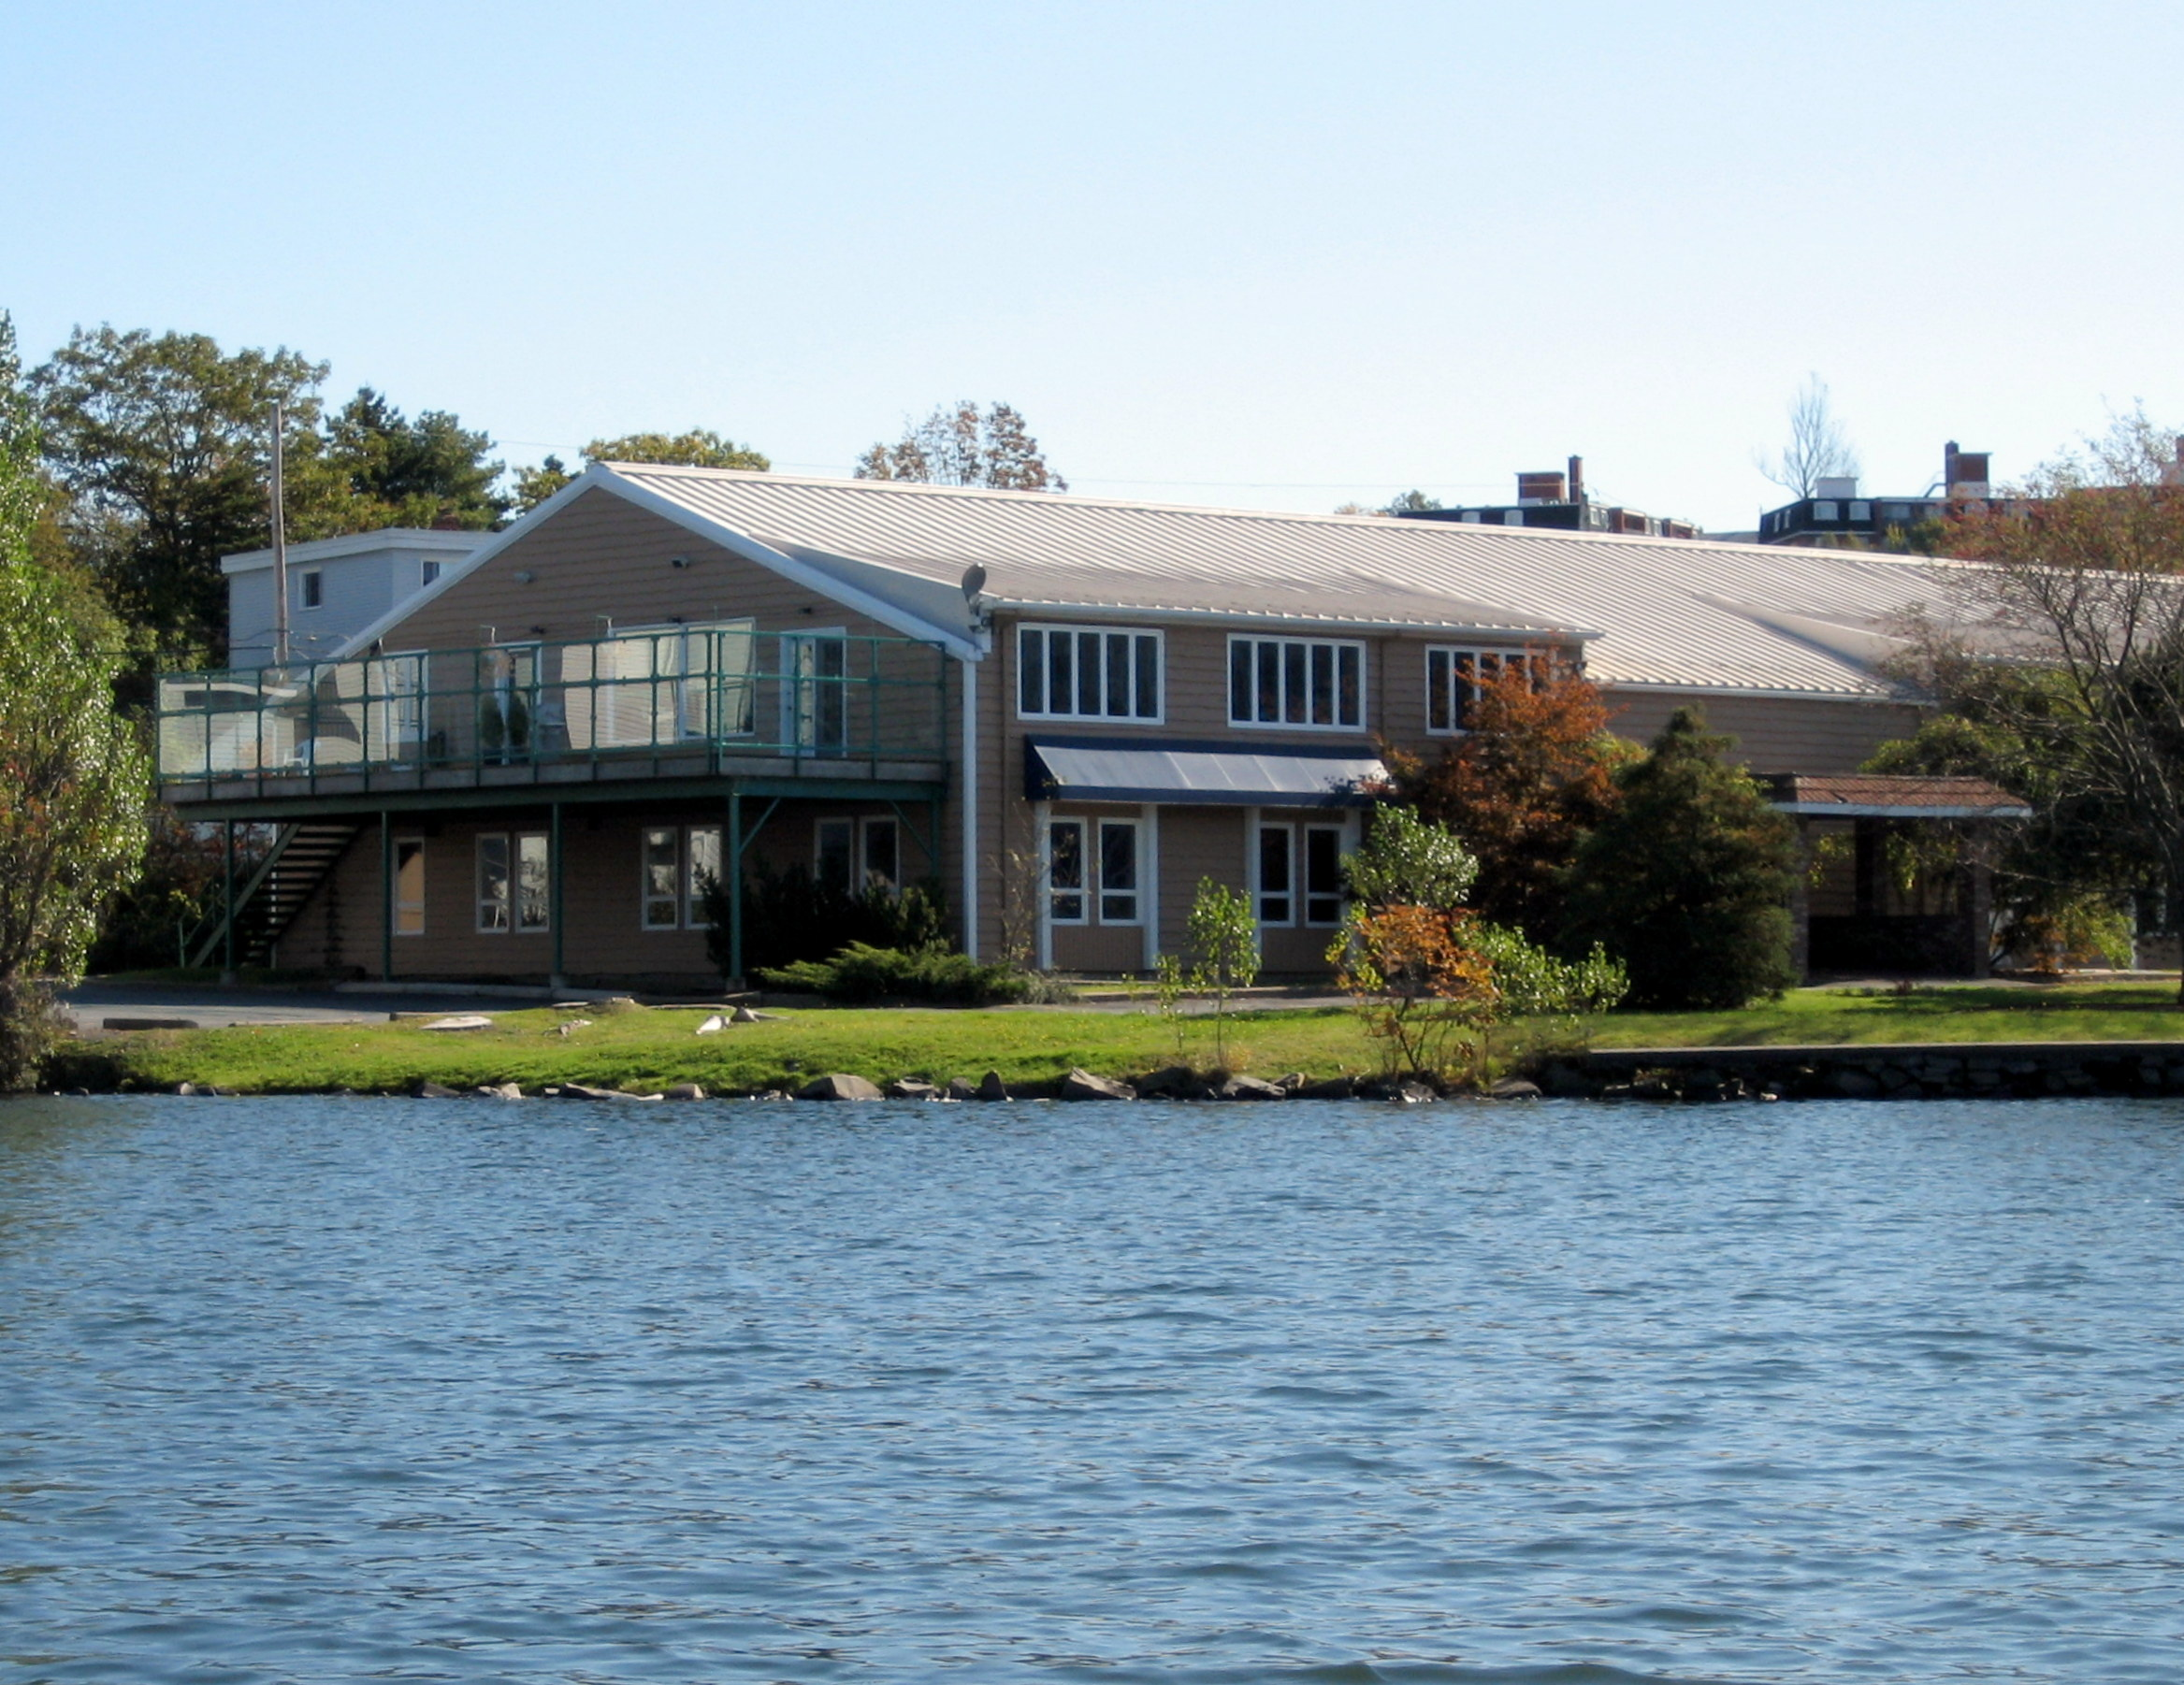 Seaforth Office from the Lake